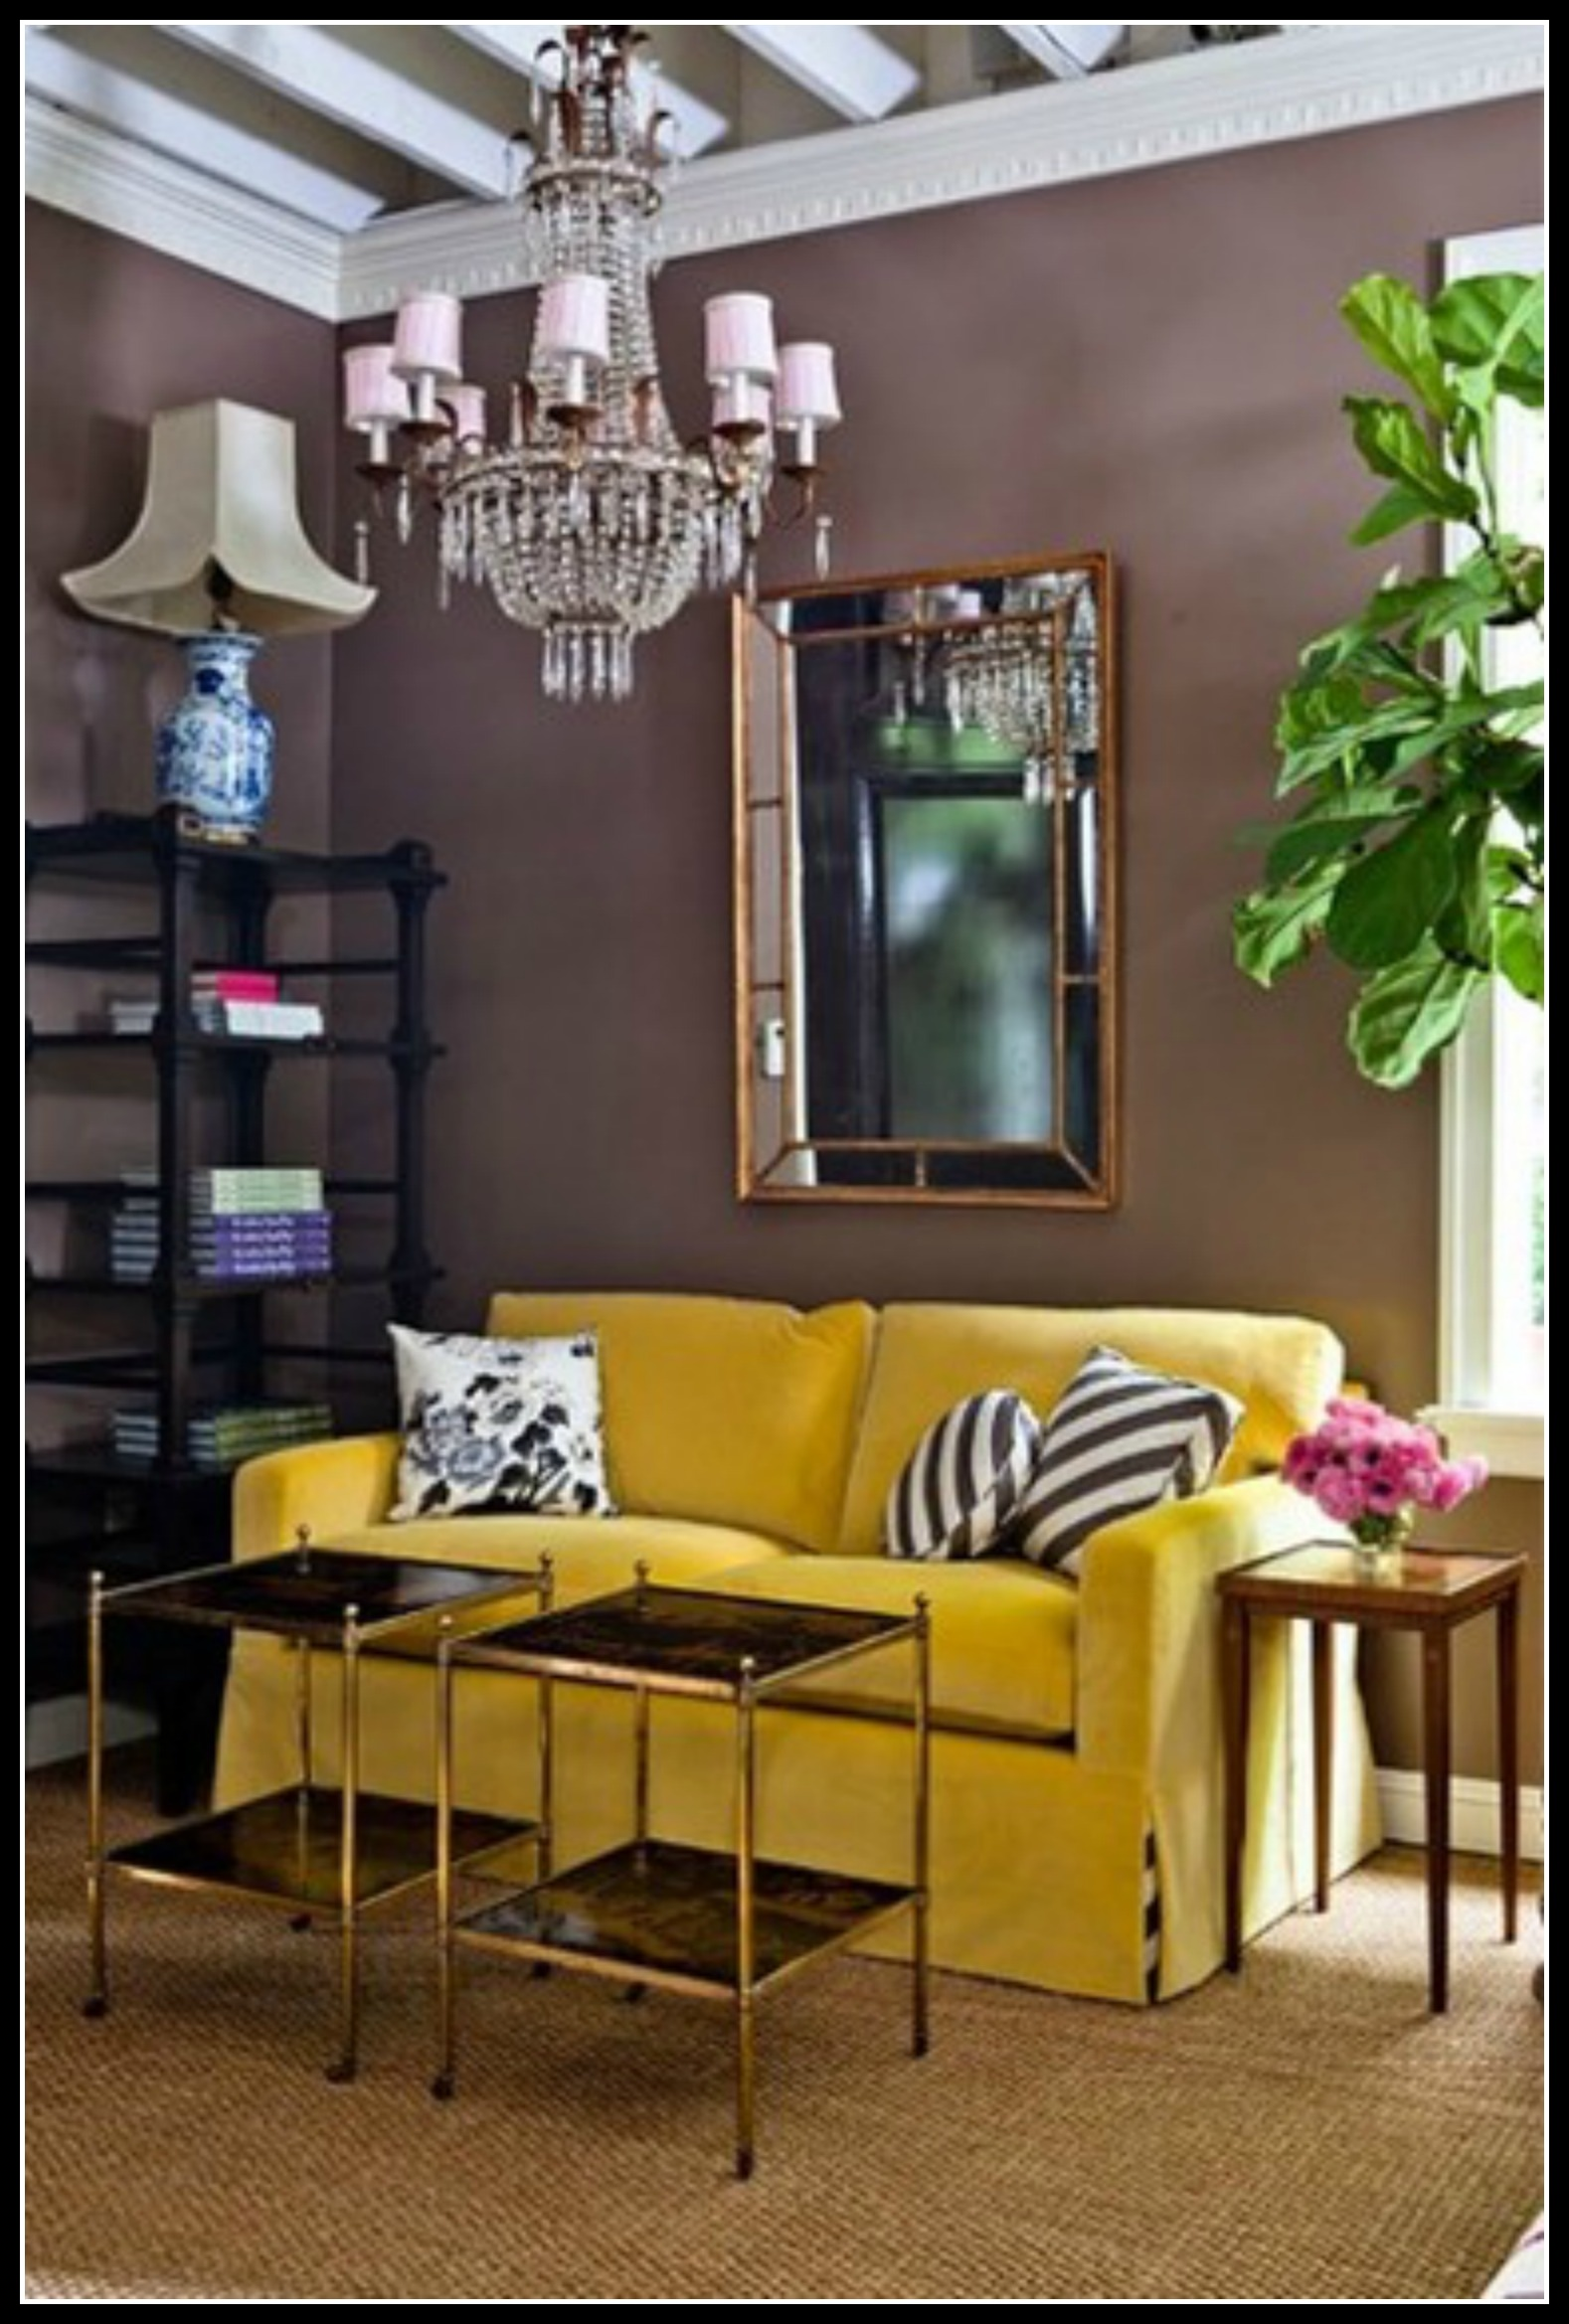 http://courtneyoutloud.files.wordpress.com/2012/03/yellow-couch-and-grey-wall-edited.jpg